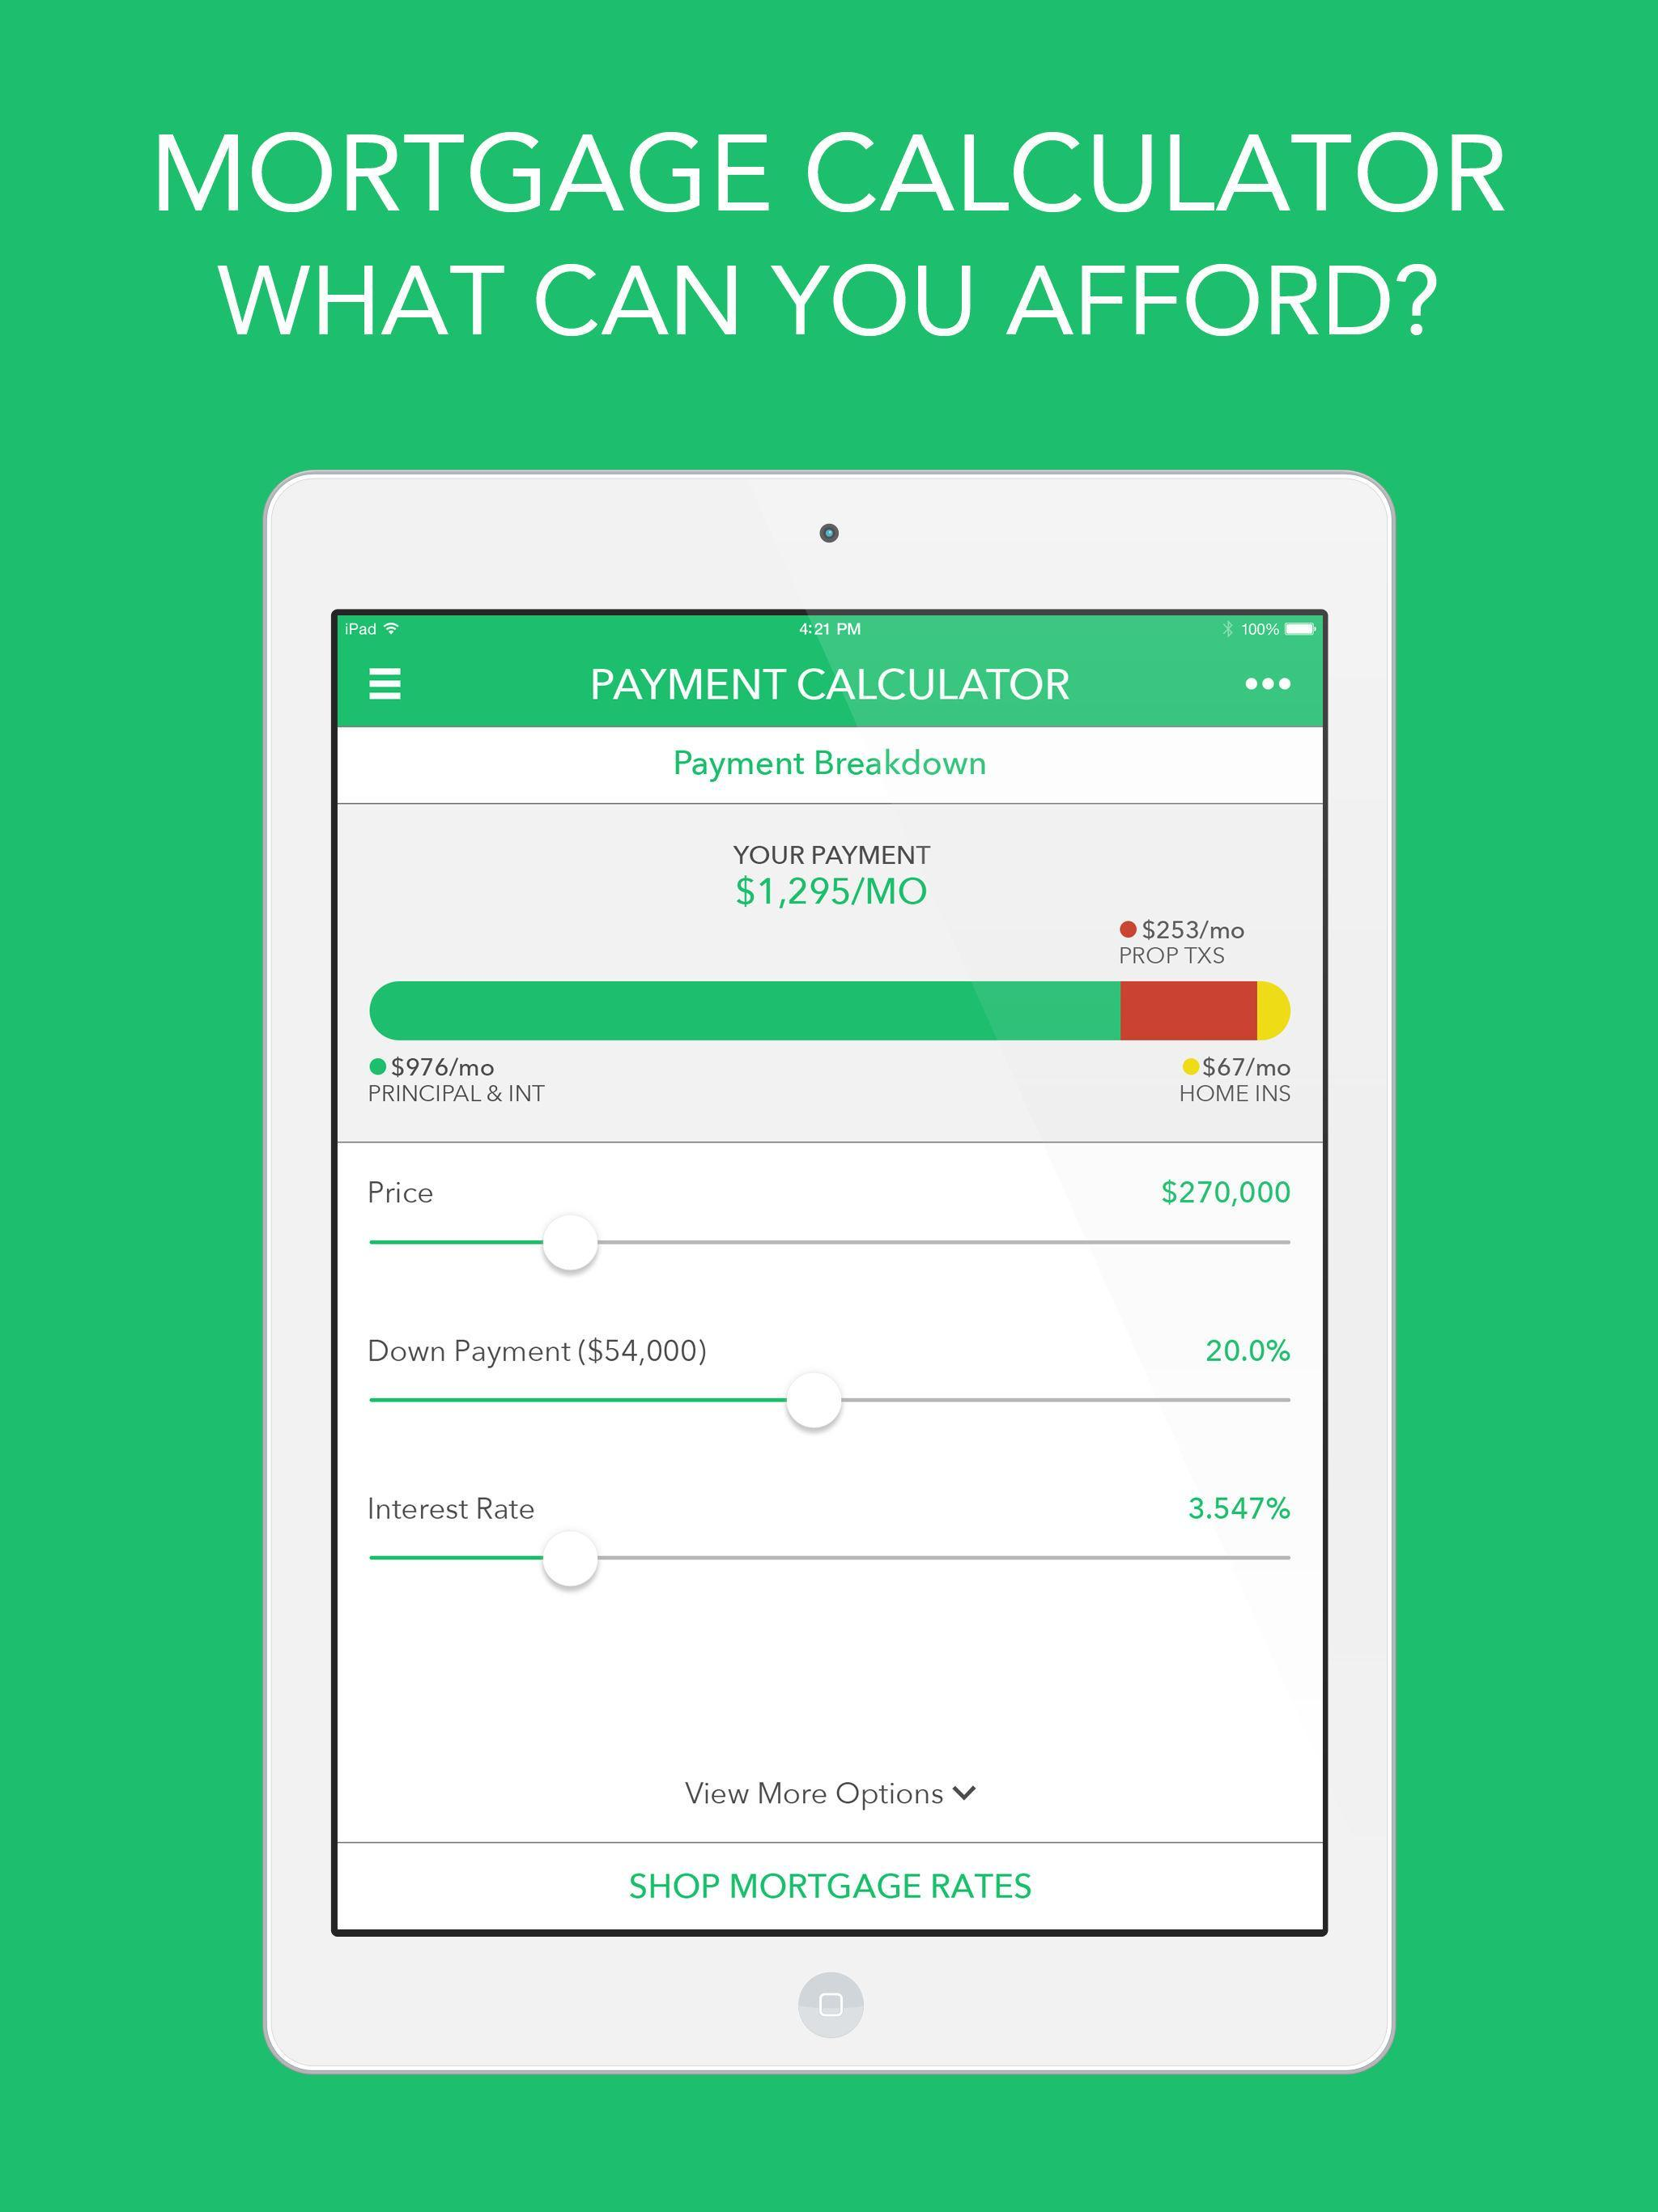 Down Payment Calculator >> Mortgage Loan Calculator For Android Apk Download